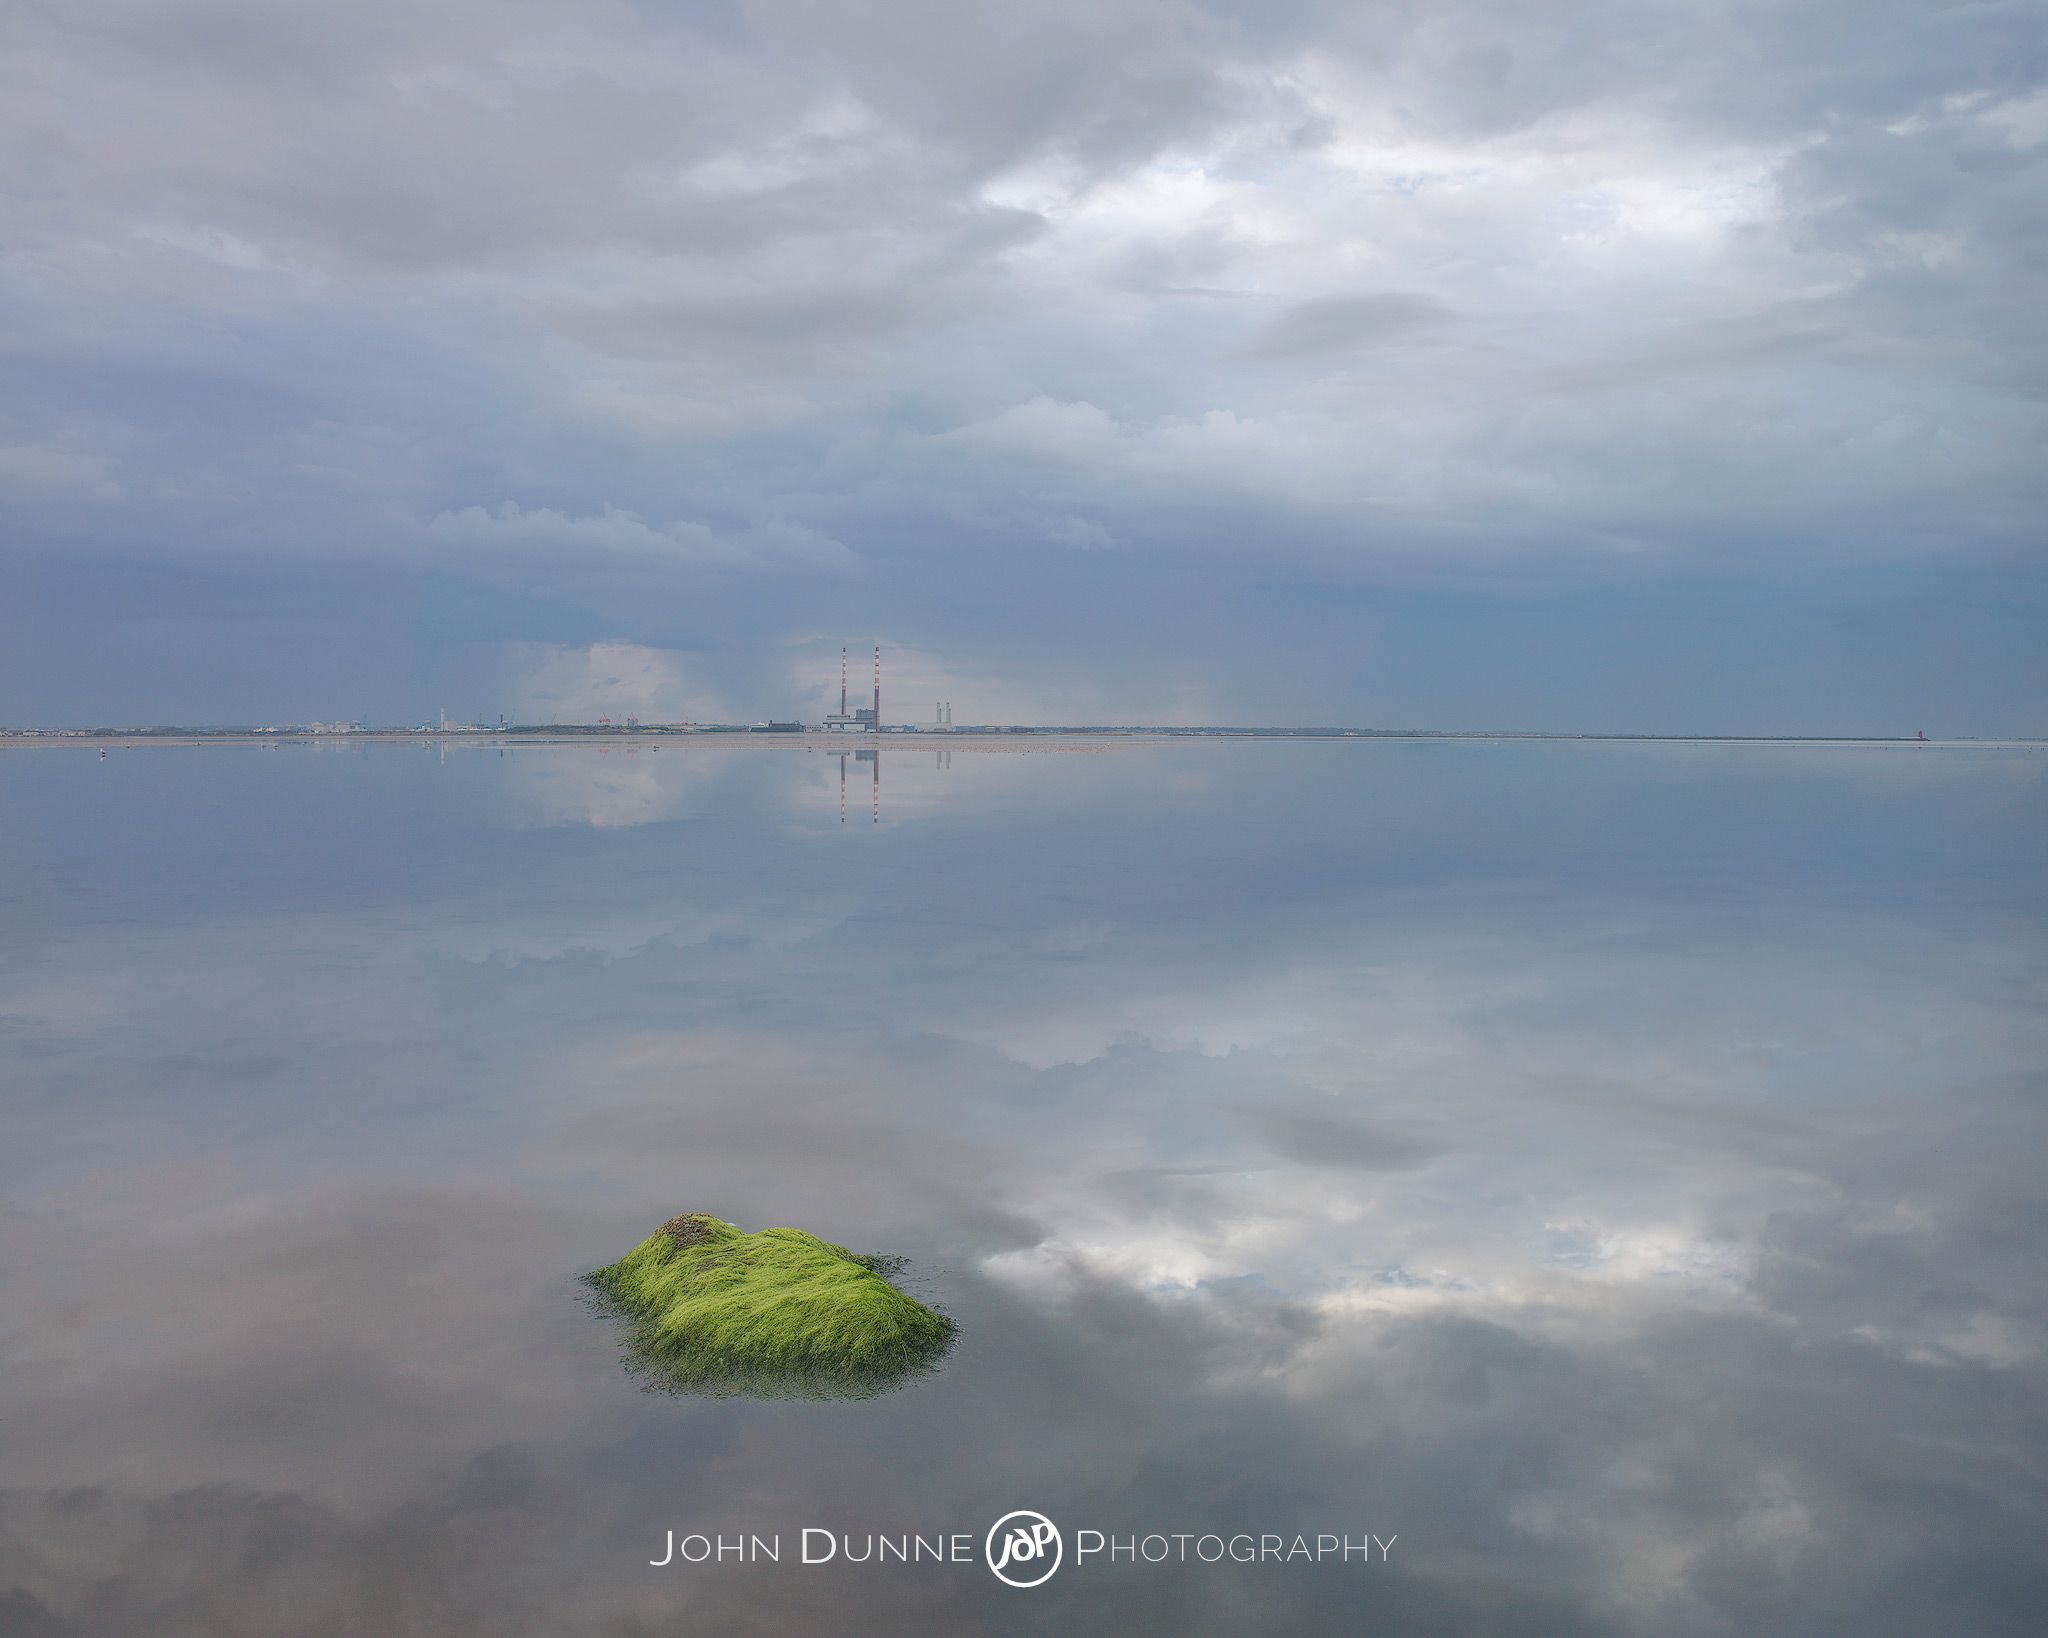 The Stillness after the Storm - Calm, Tranquil, Stillness by John Dunne.